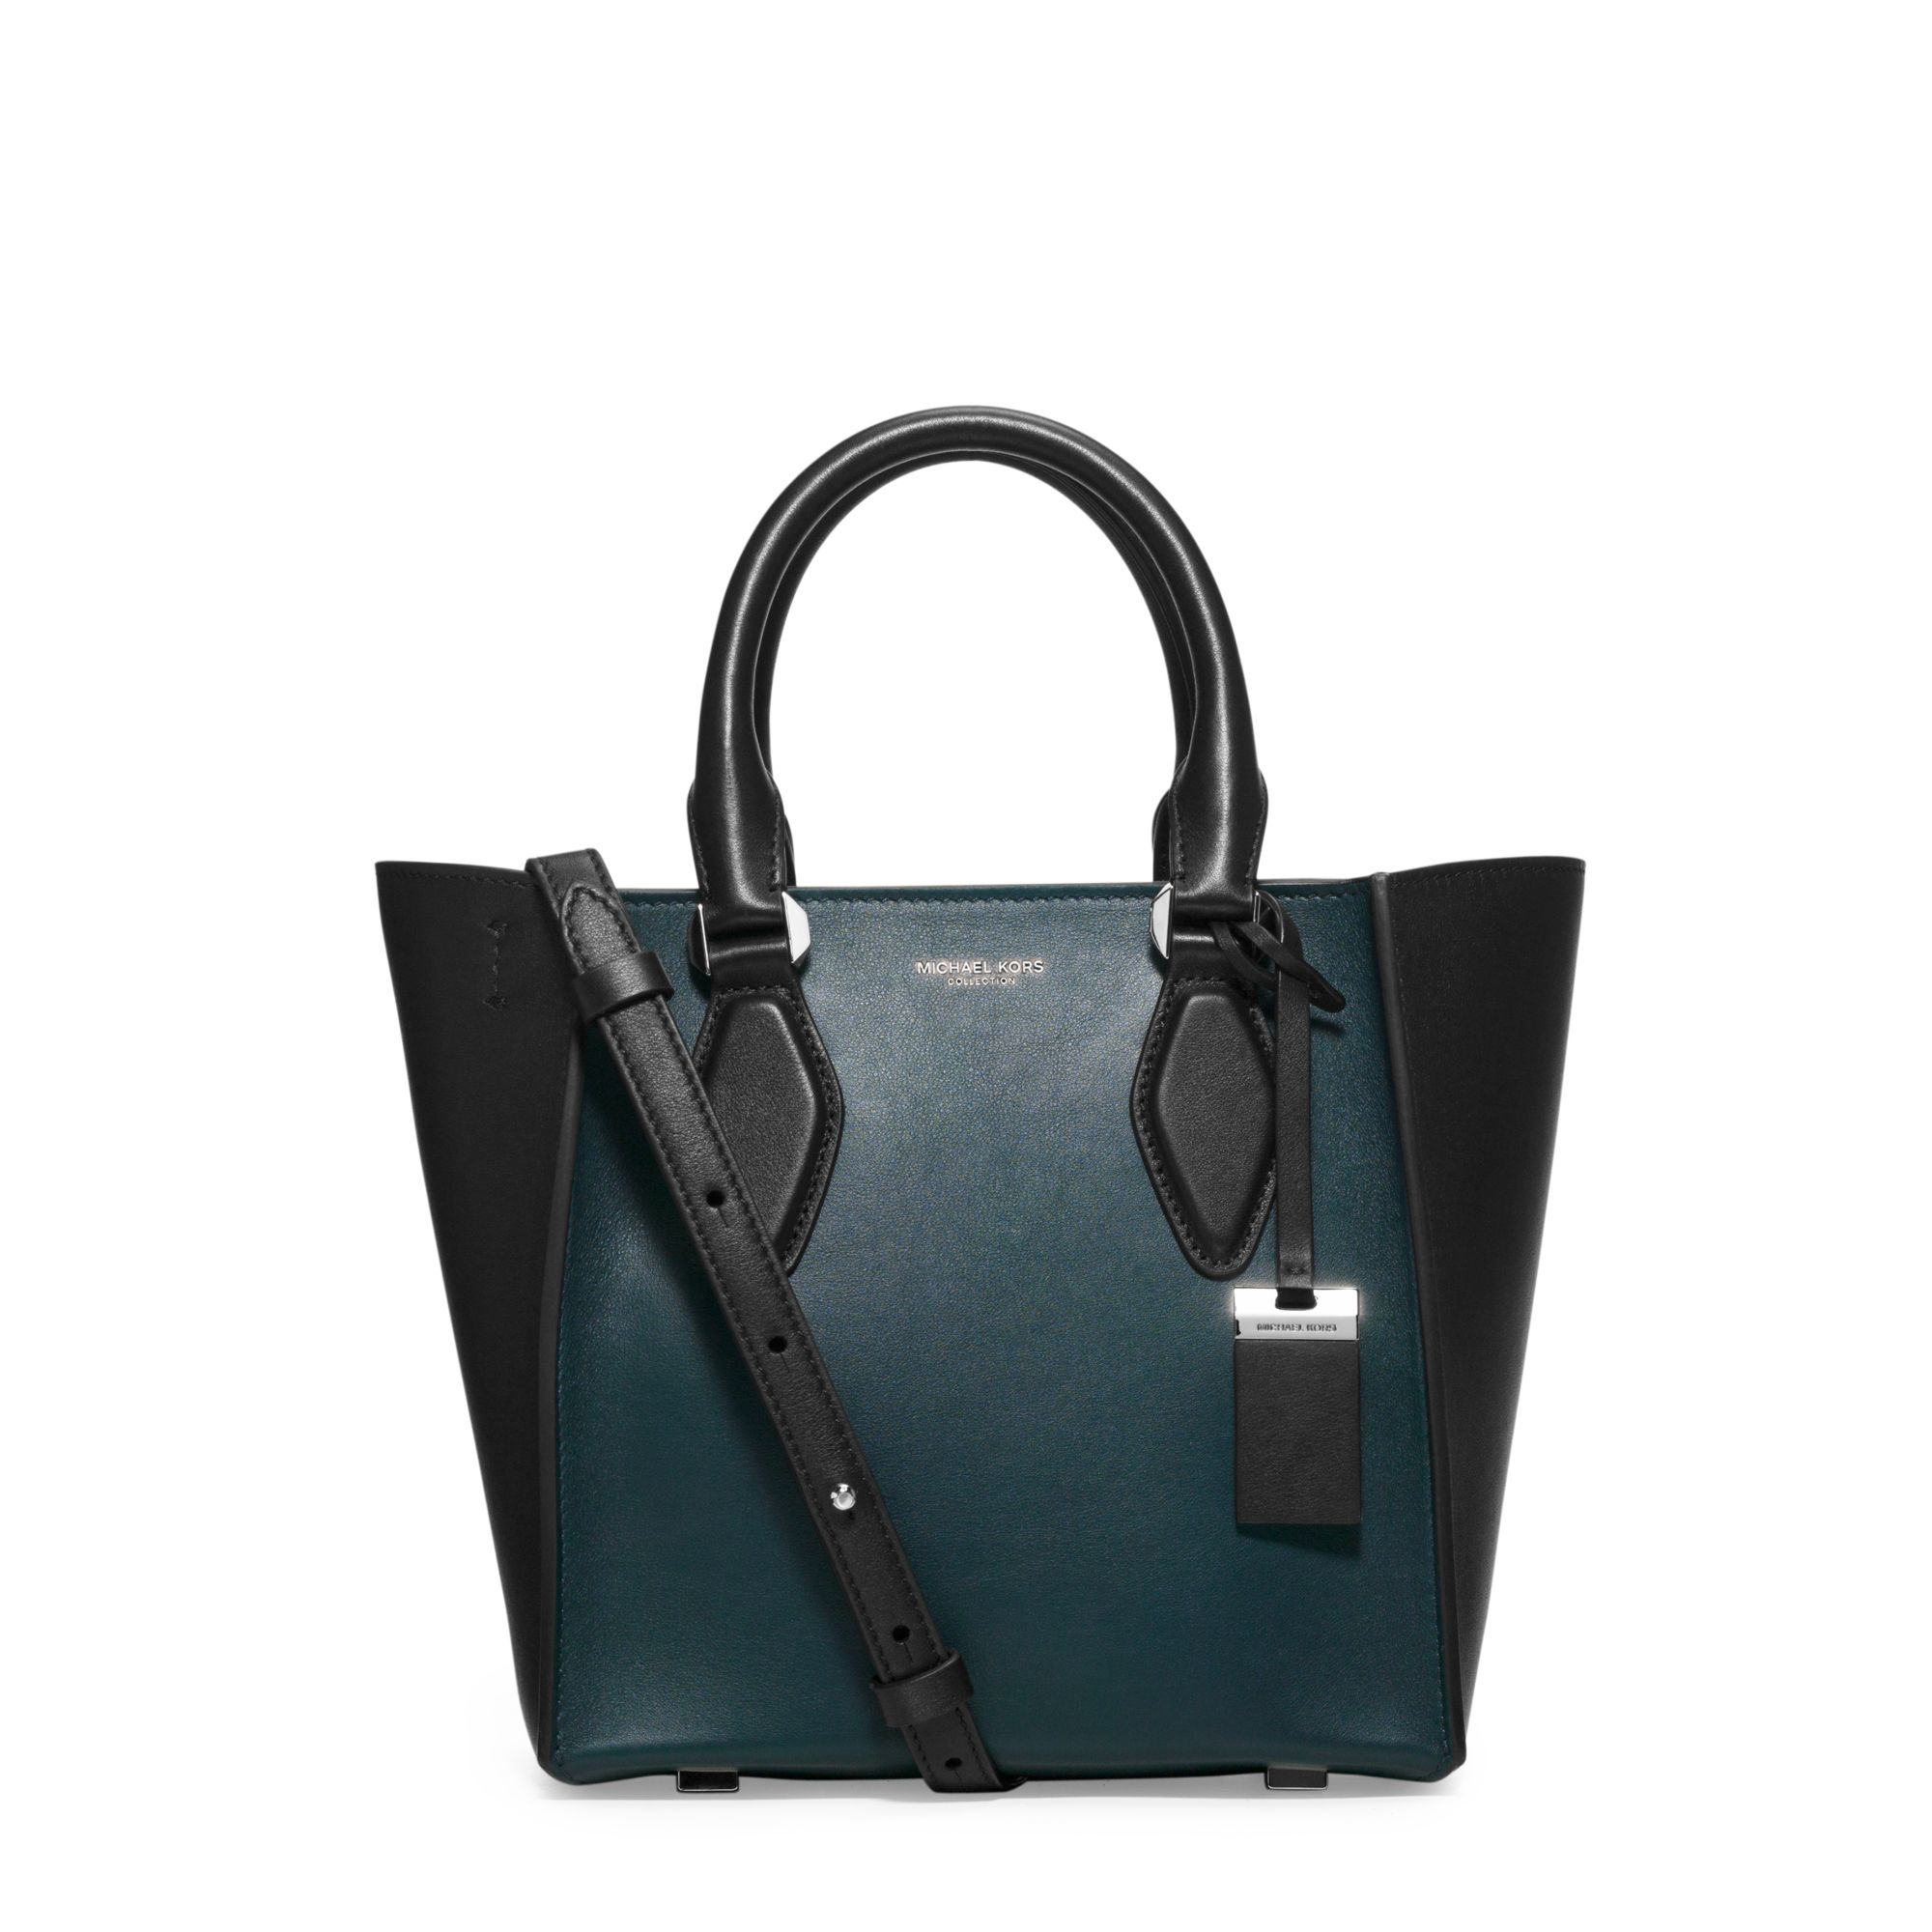 551d5f3166ff ... inexpensive lyst michael kors gracie small two tone leather tote in  blue 8e71d 39cb7